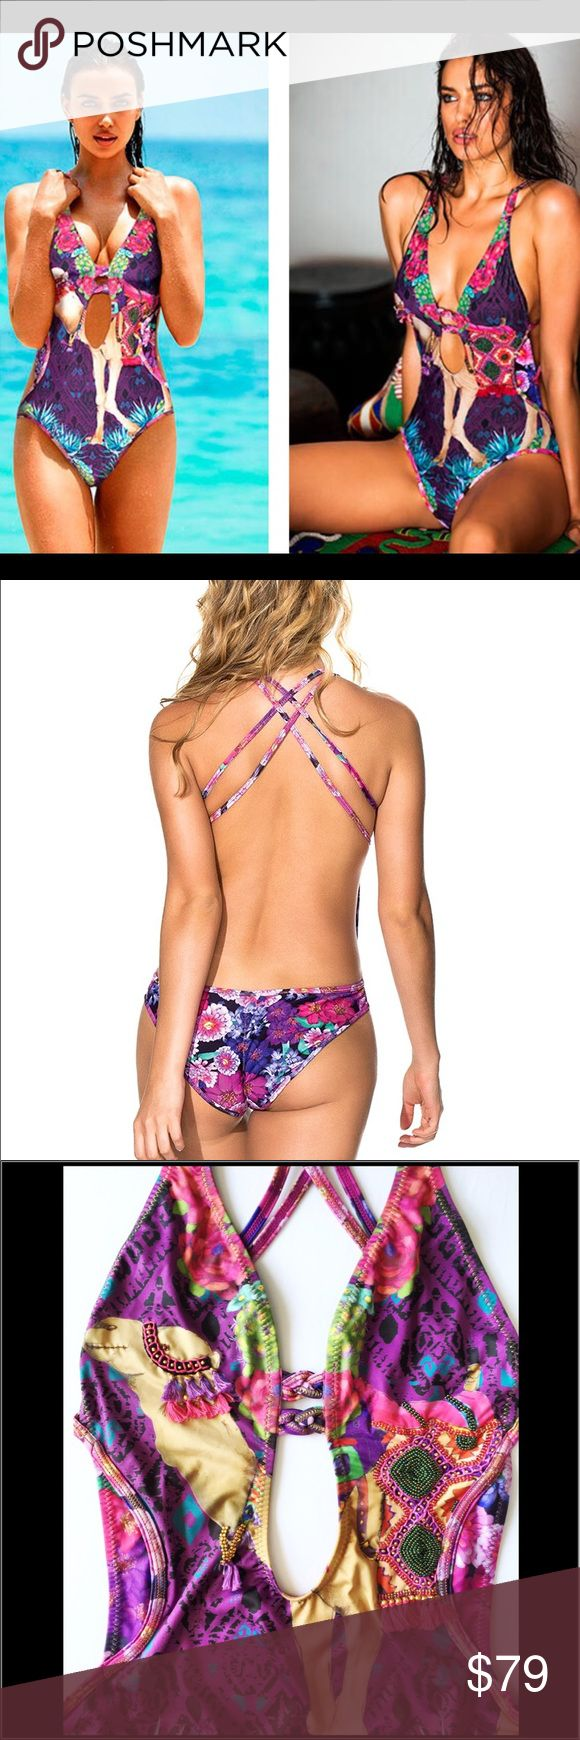 NWT agua bendita one-piece monokini small size New with tags. Embroidered monokini. By agua bendita. Made in colombia. Small size Agua Bendita Swim One Pieces